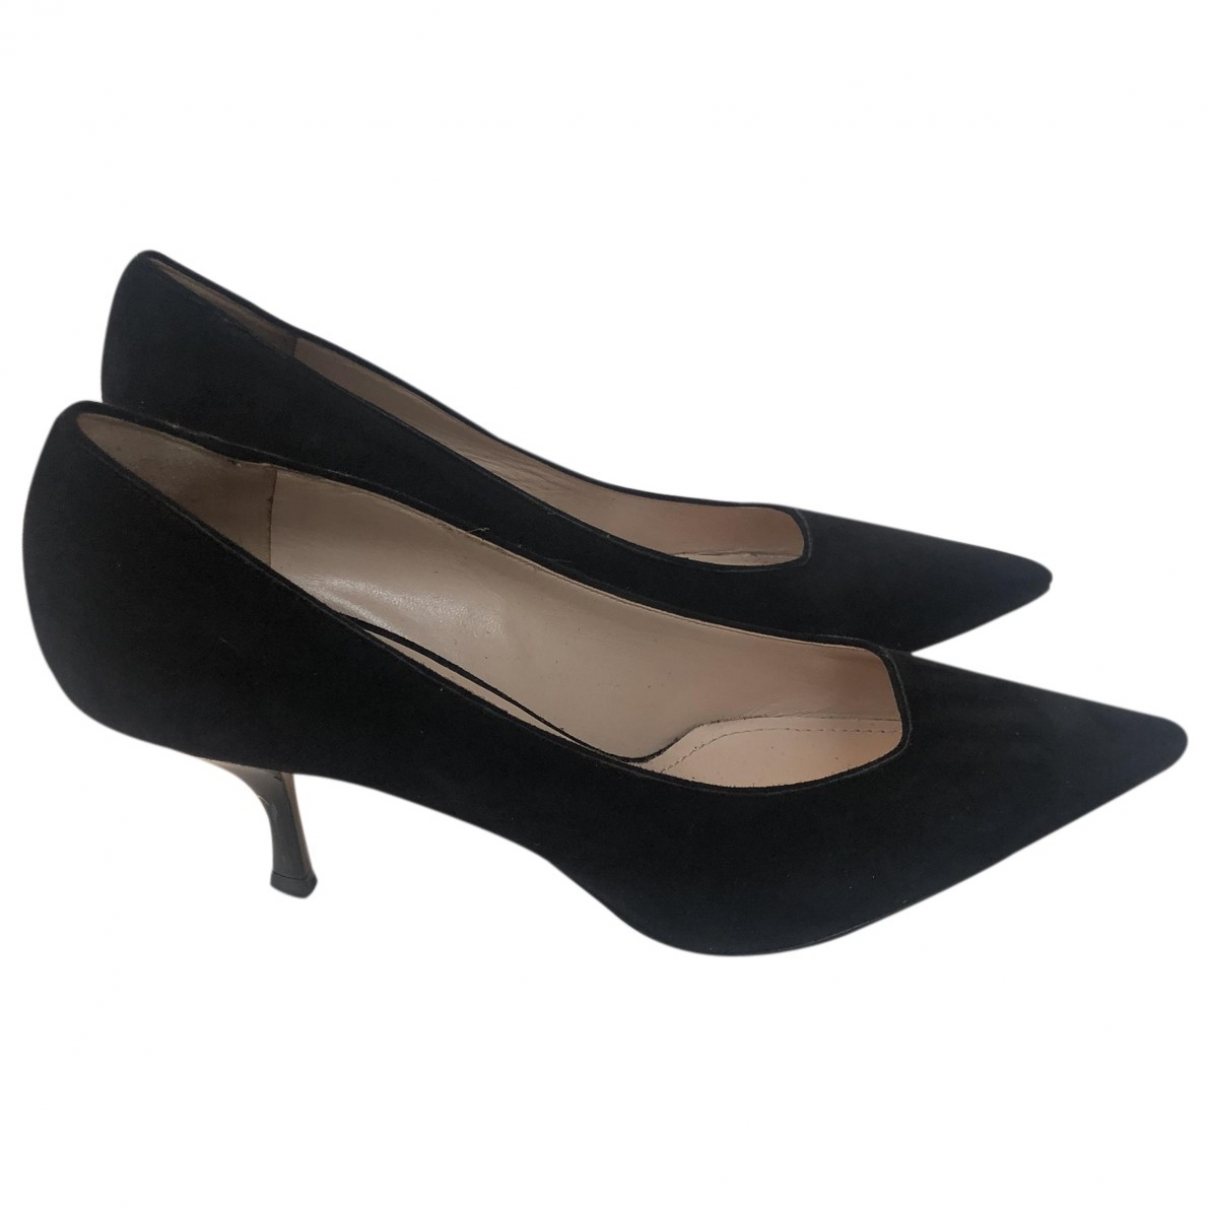 Miu Miu \N Black Suede Heels for Women 36.5 EU